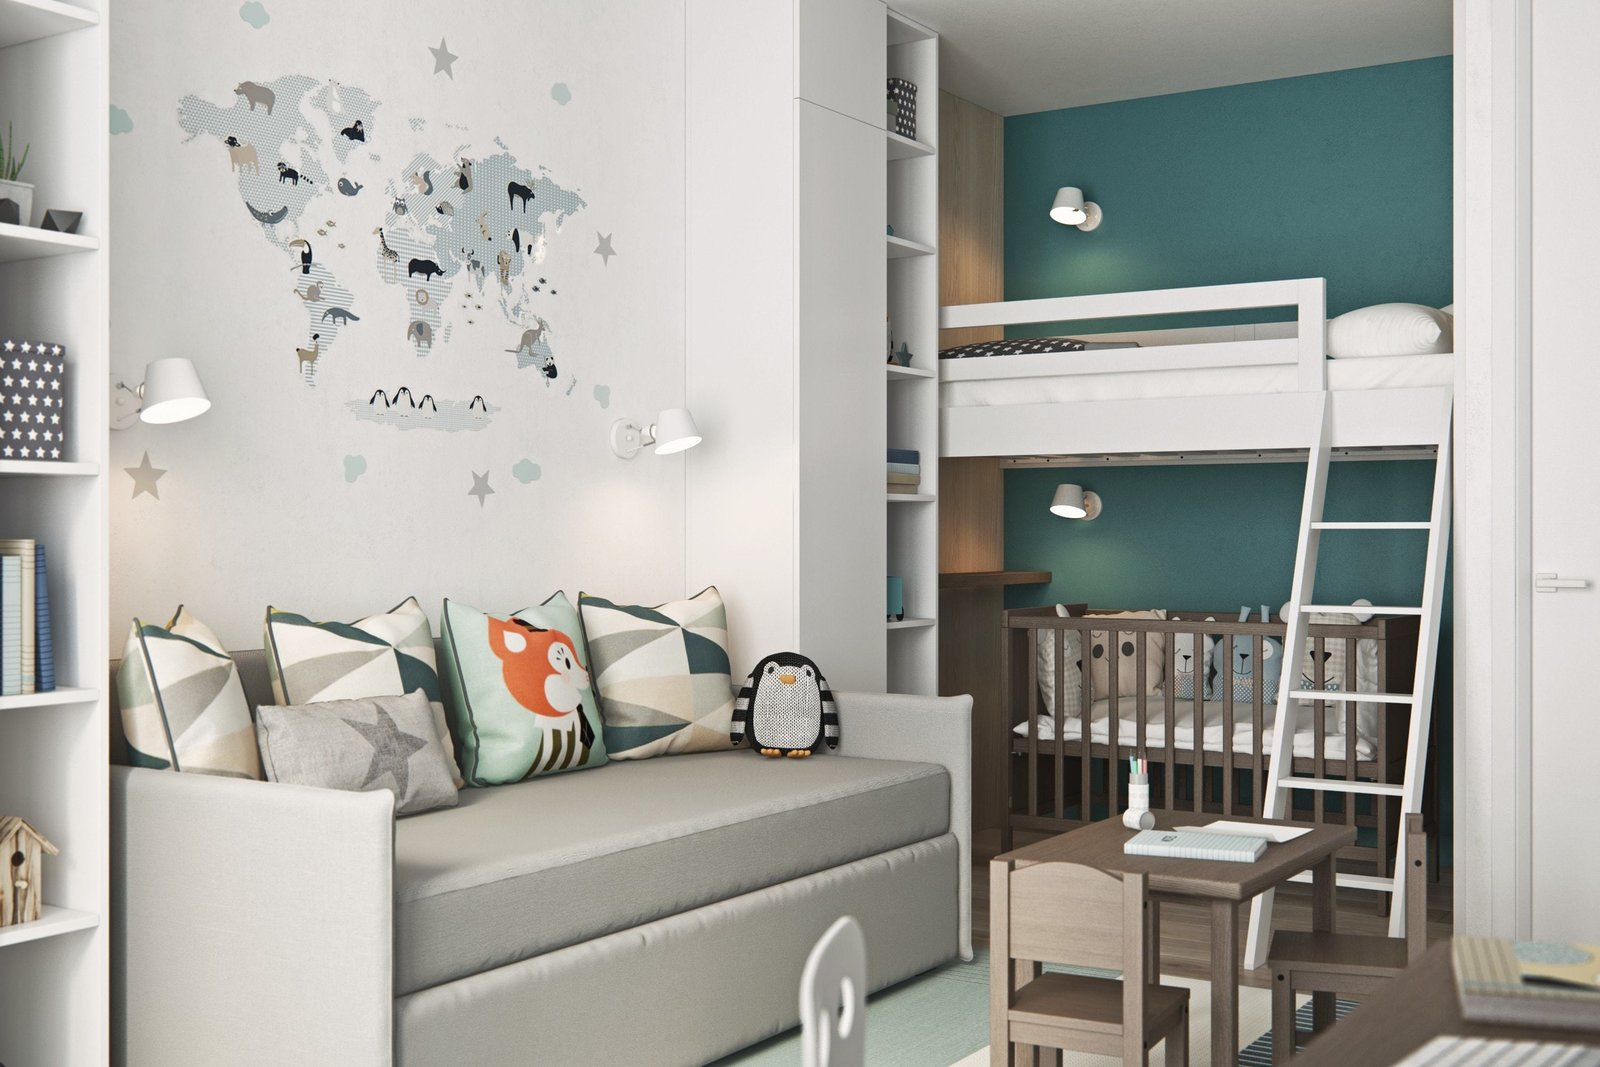 Kids Room  Interior Design Project in Contemporary Style by Geometrium